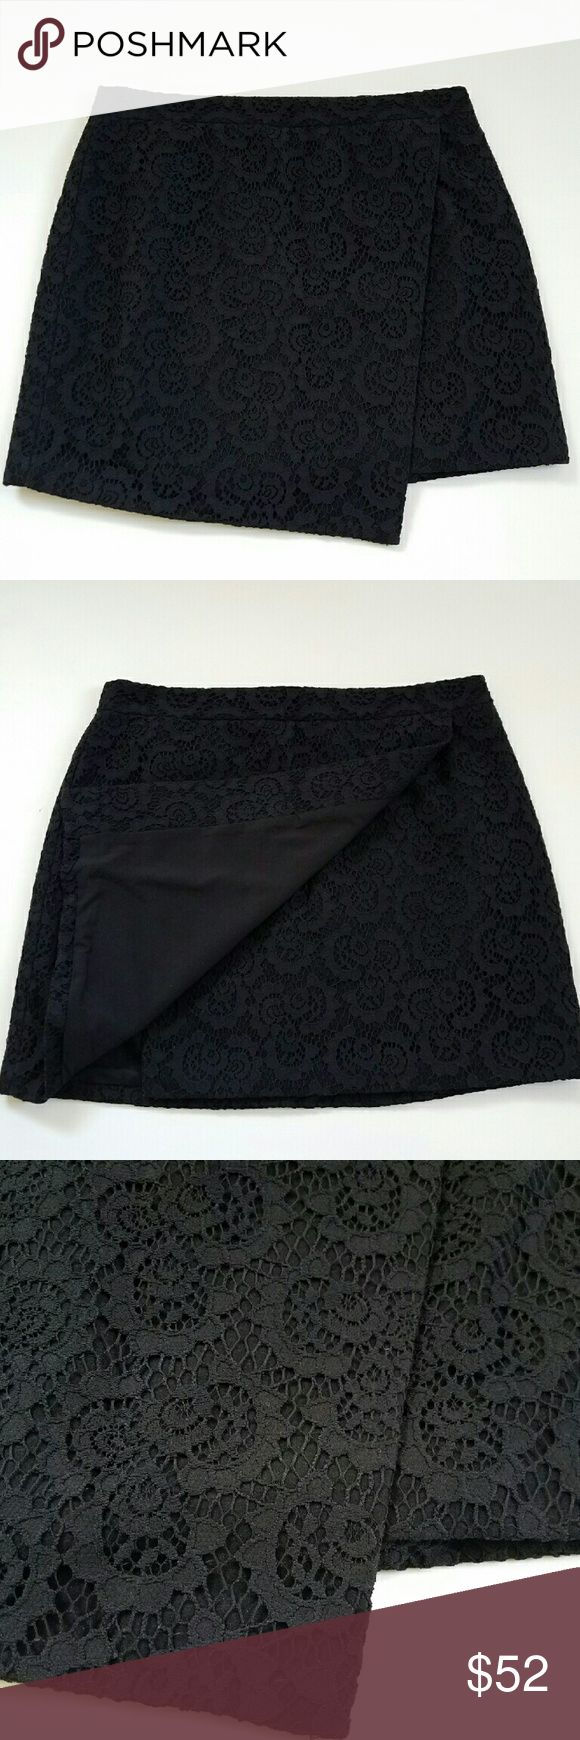 """Madewell Black Lace Asymmetrical Mini Skirt NWT A faux-wrap envelope skirt in rich textural lace. Coolly asymmetrical, it's a fresh take on a traditional party mini.? Short, straight mini skirt. 17.5"""" across waist, 17.5"""" long. Nylon/cotton. Madewell Skirts Mini"""